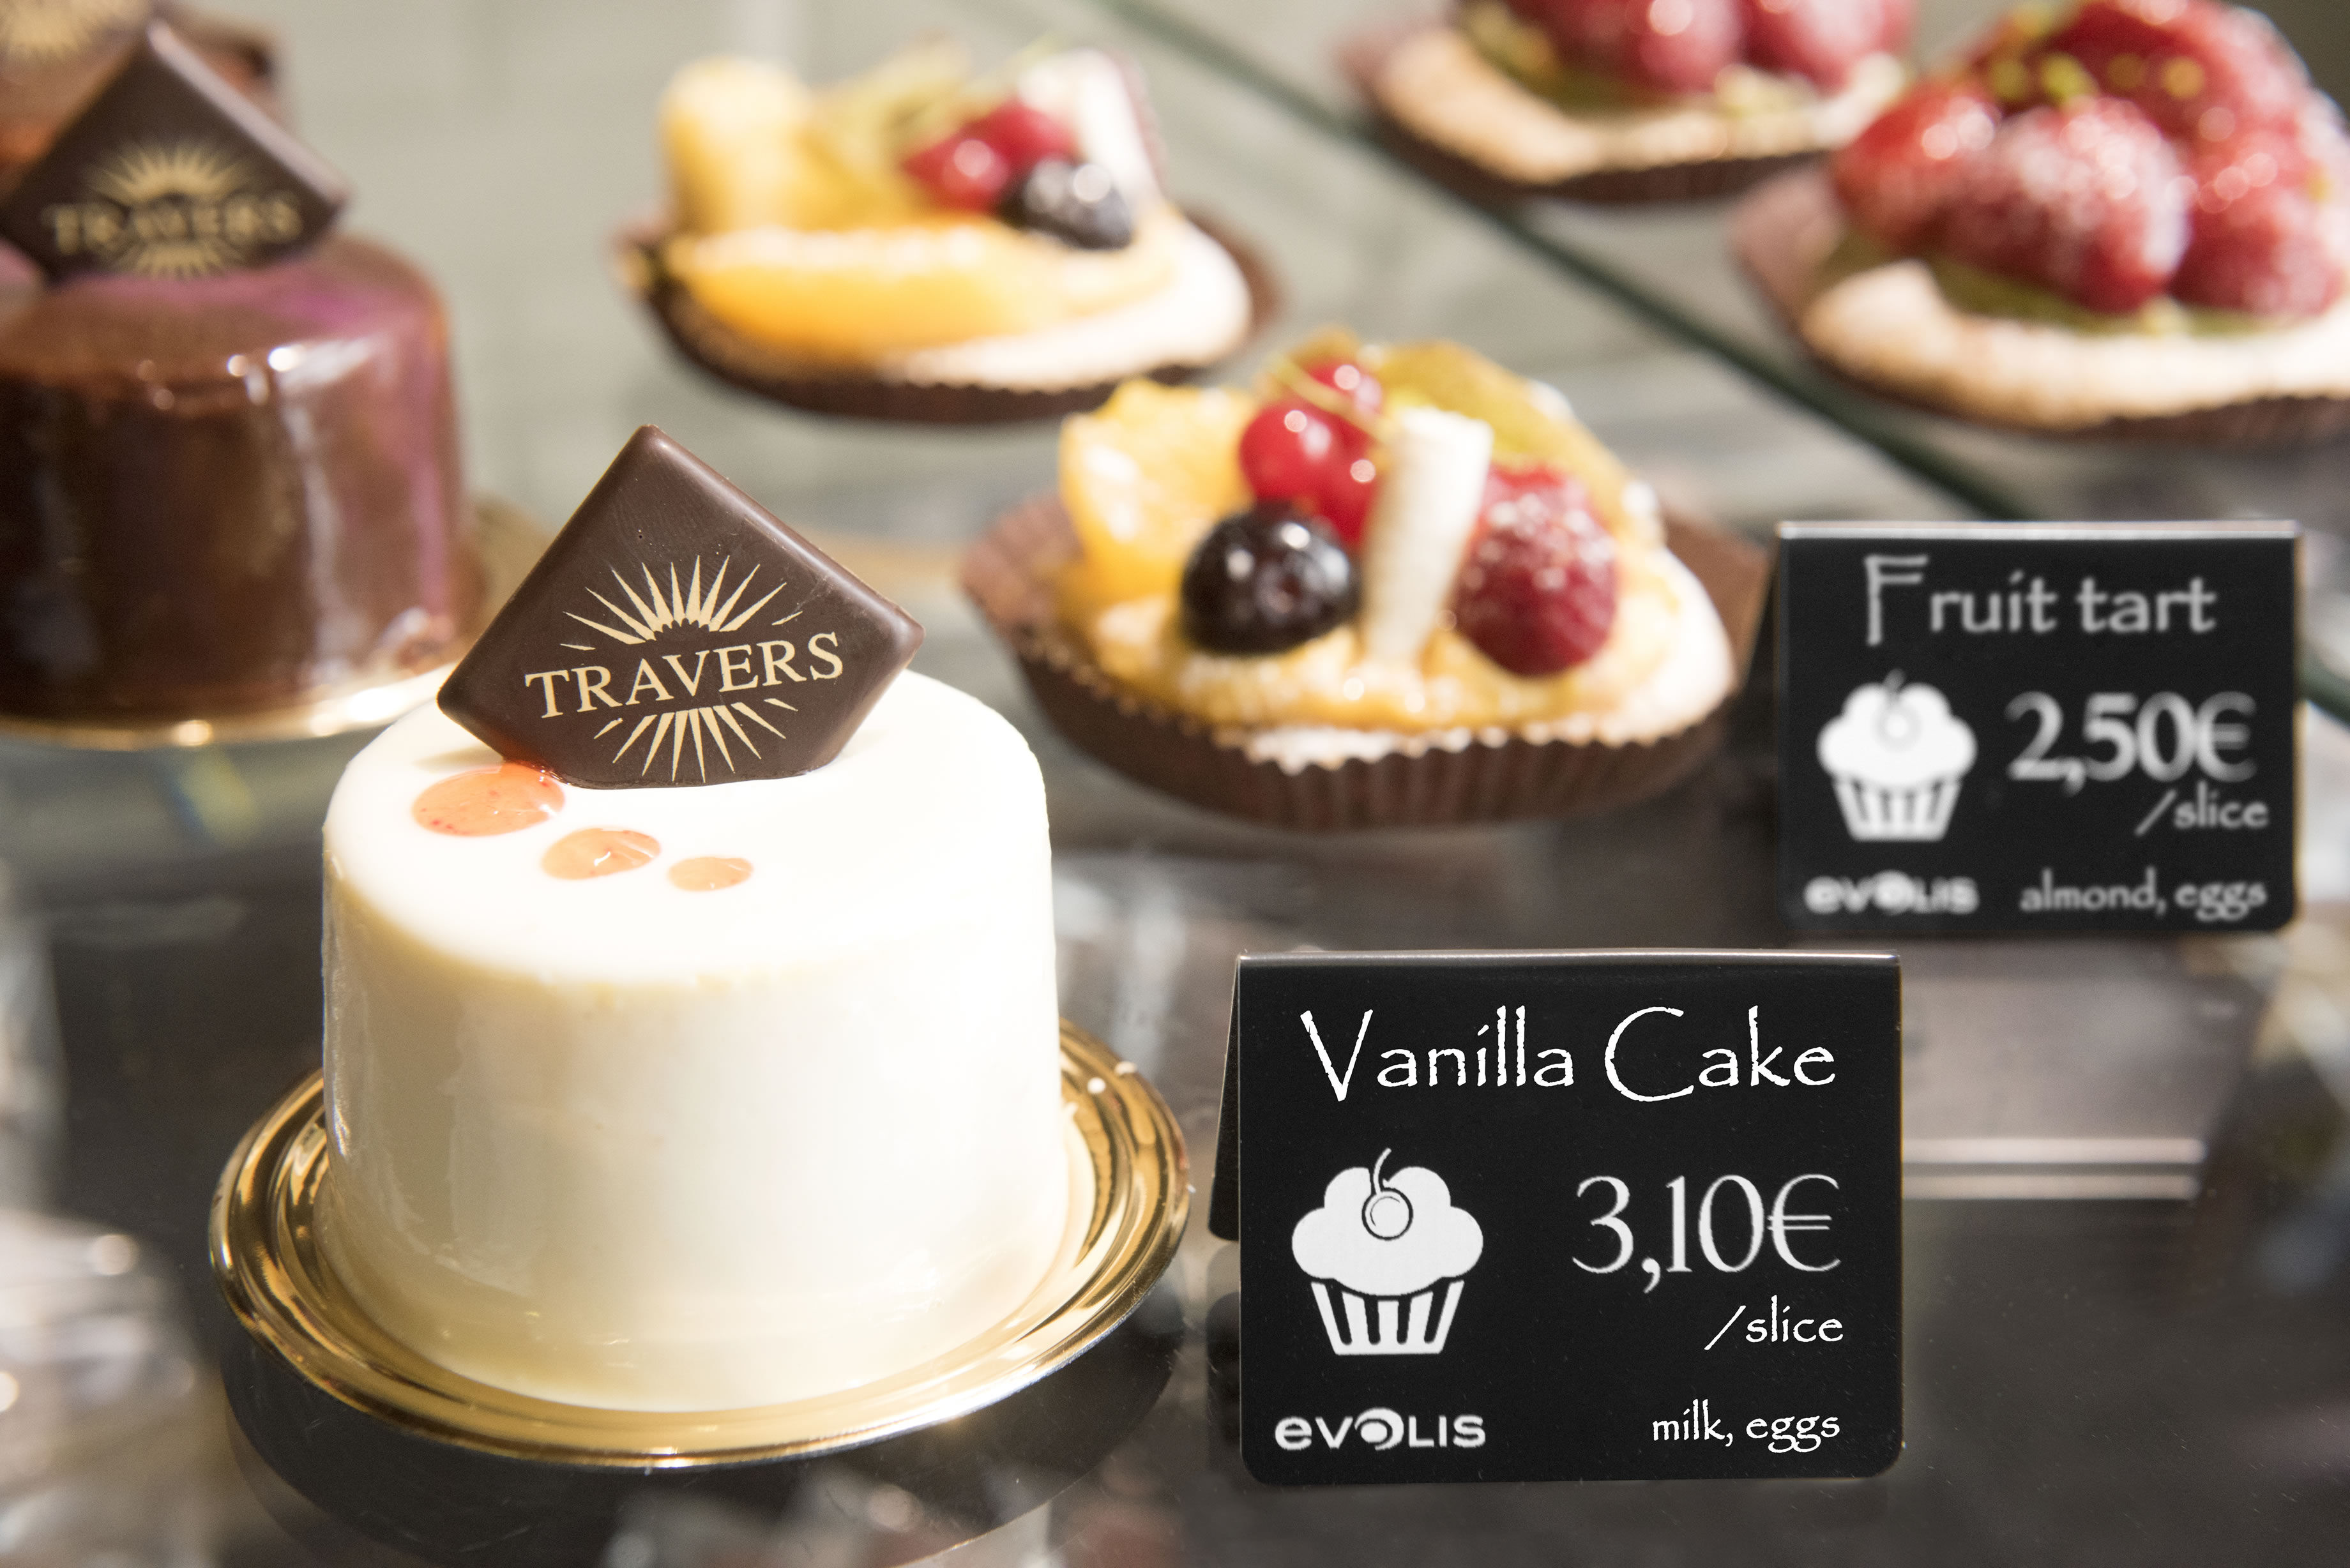 Patisserie price tags created by Edikio